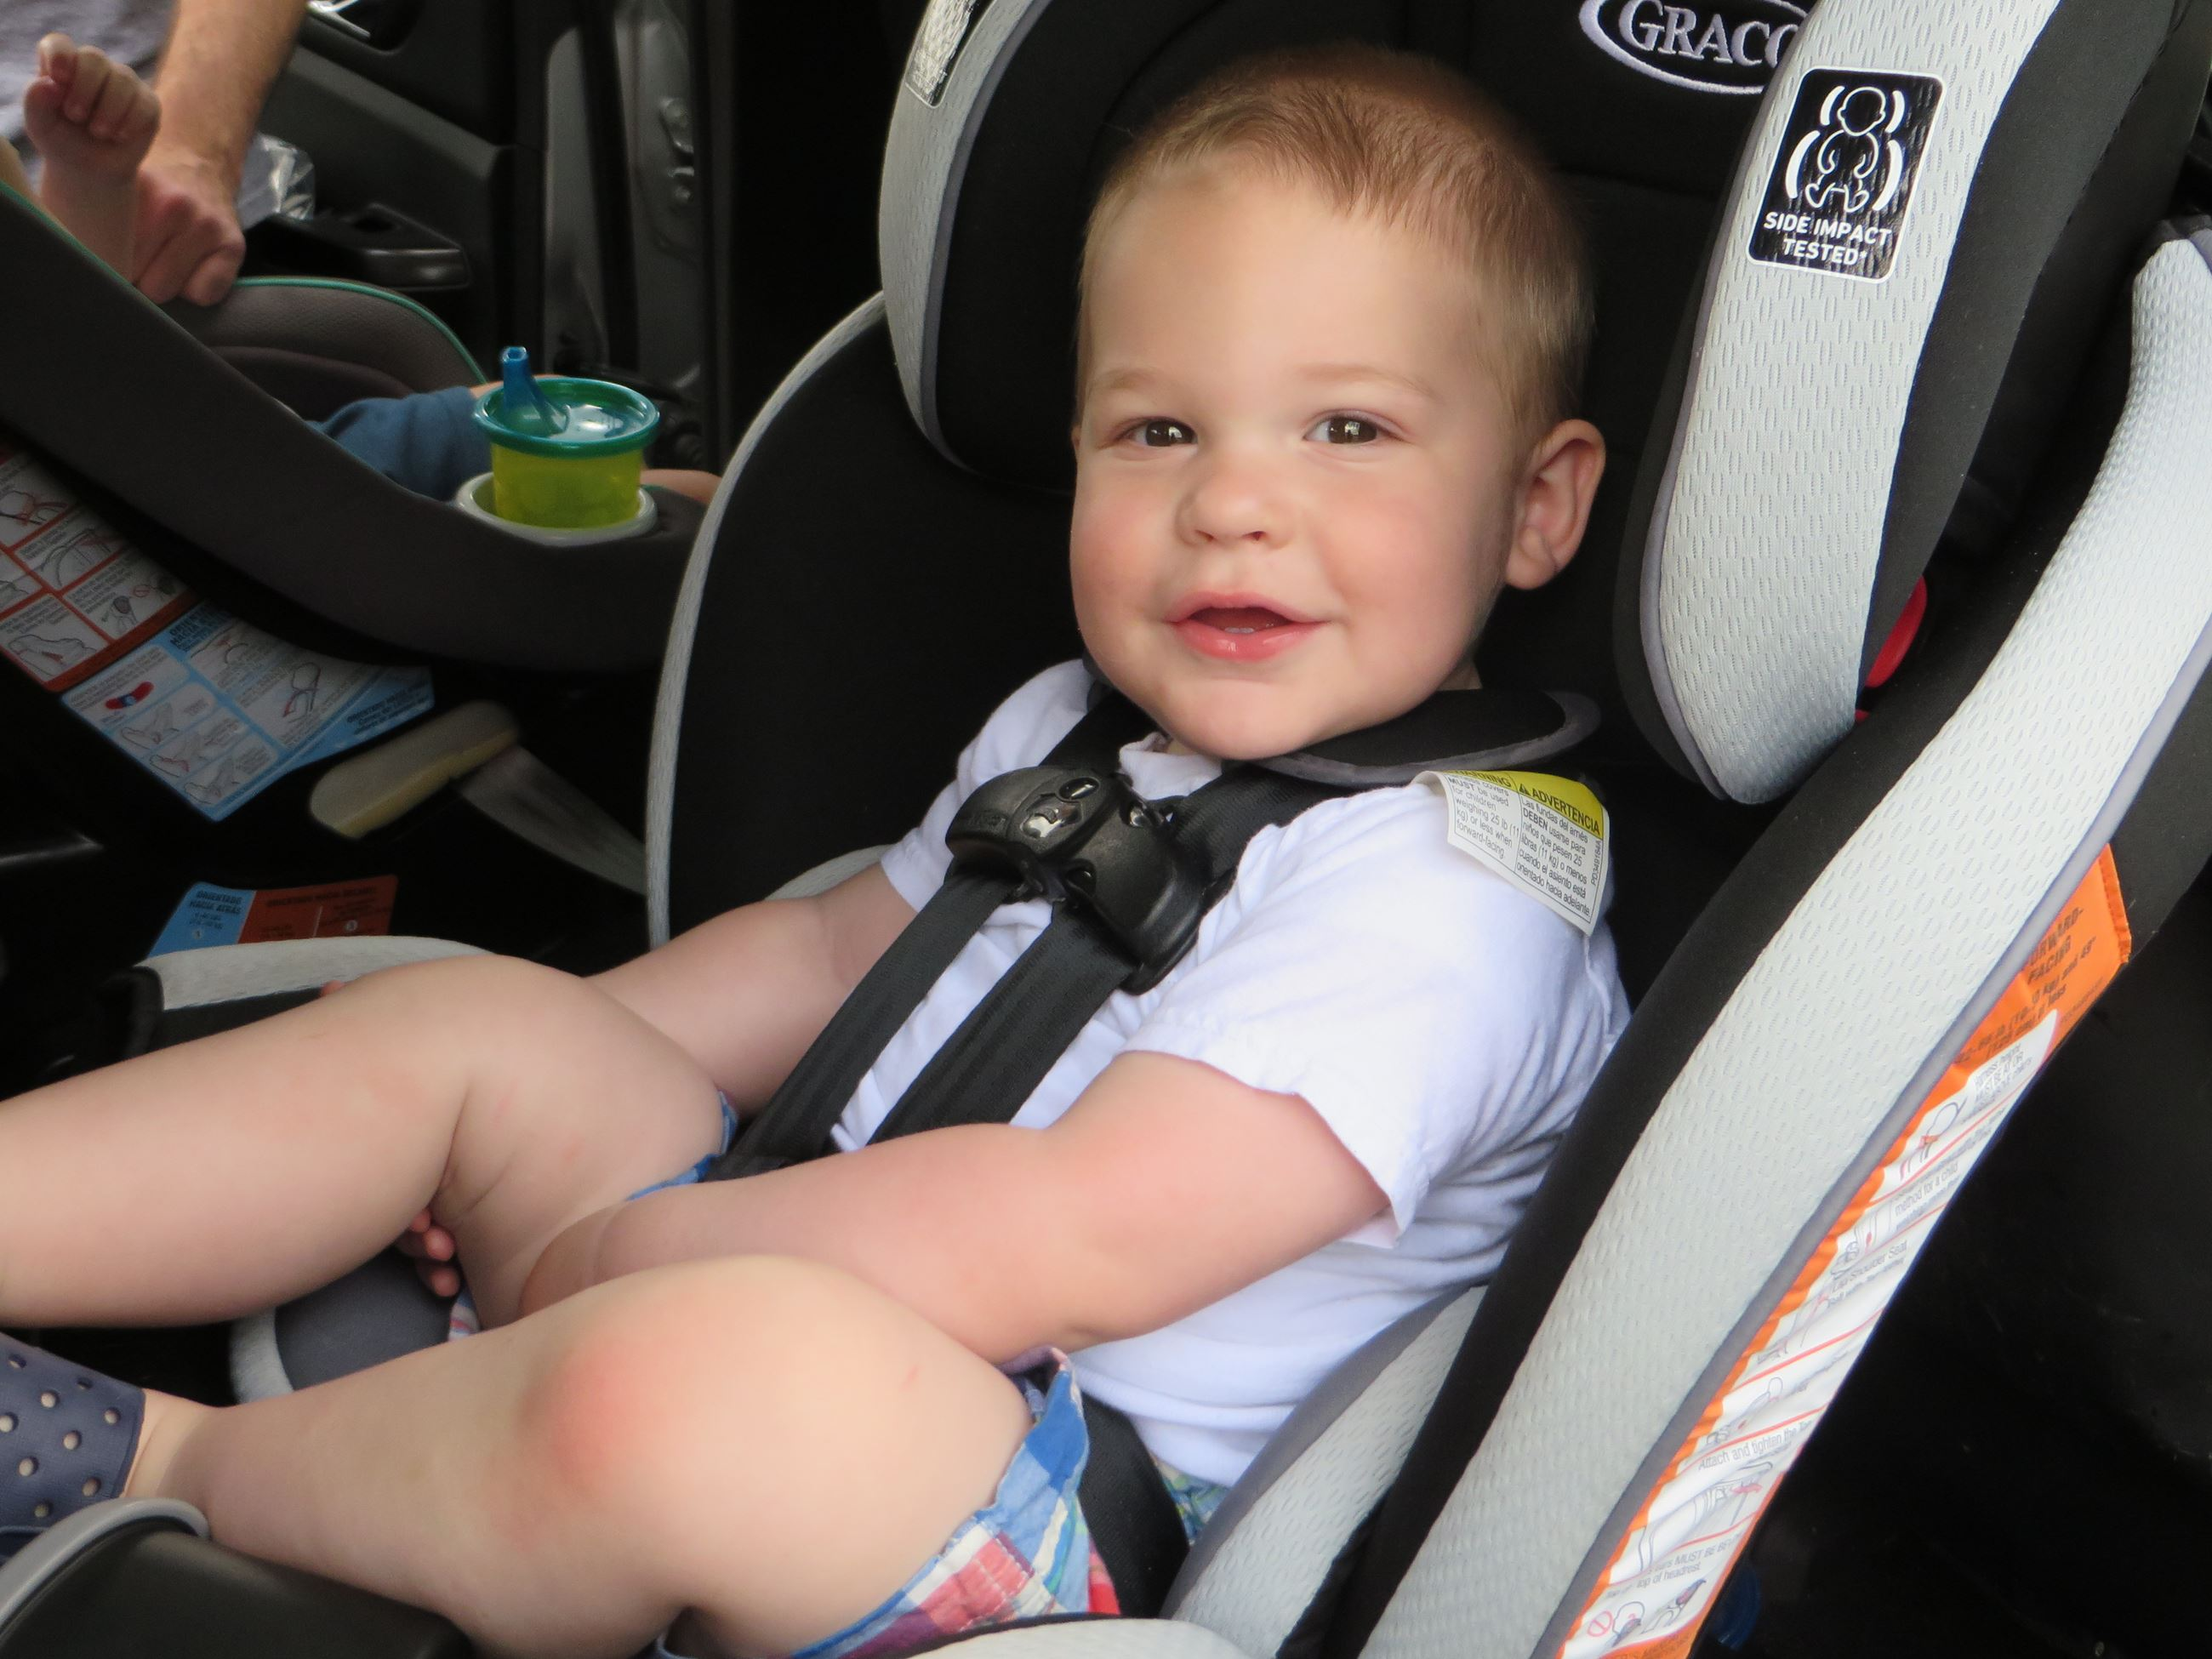 Child Properly Restrained in Car Seat